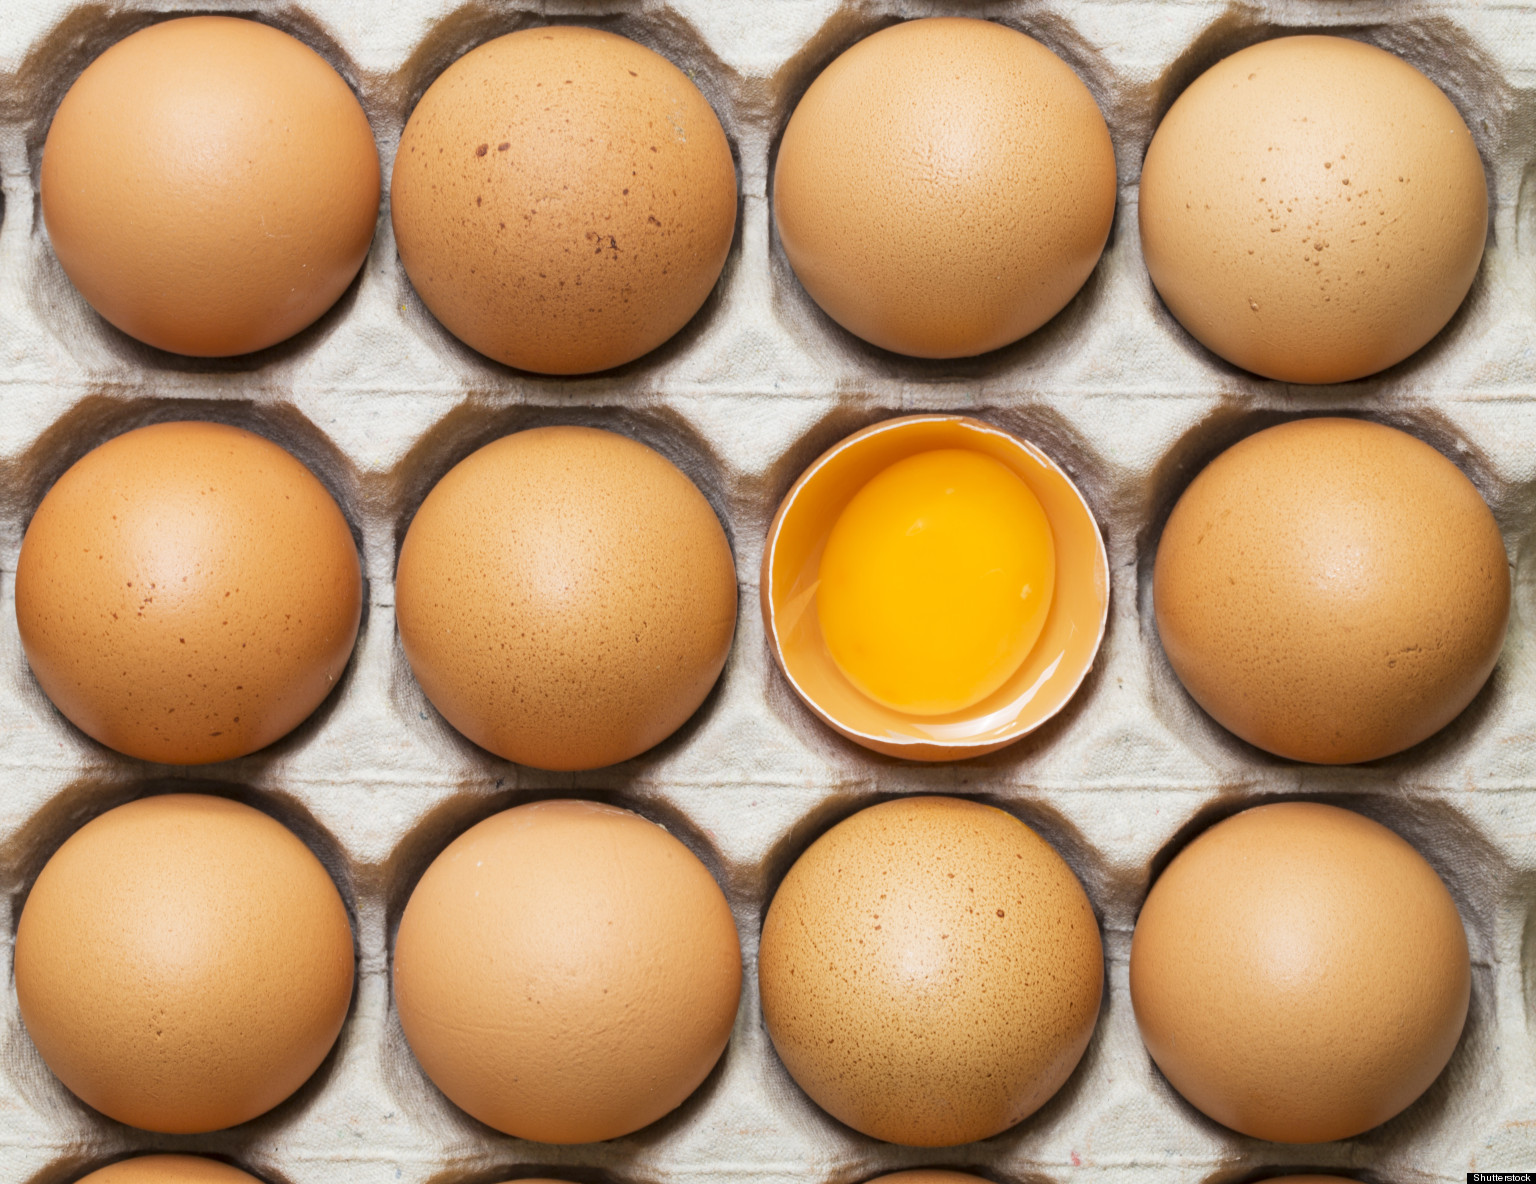 egg-allergy